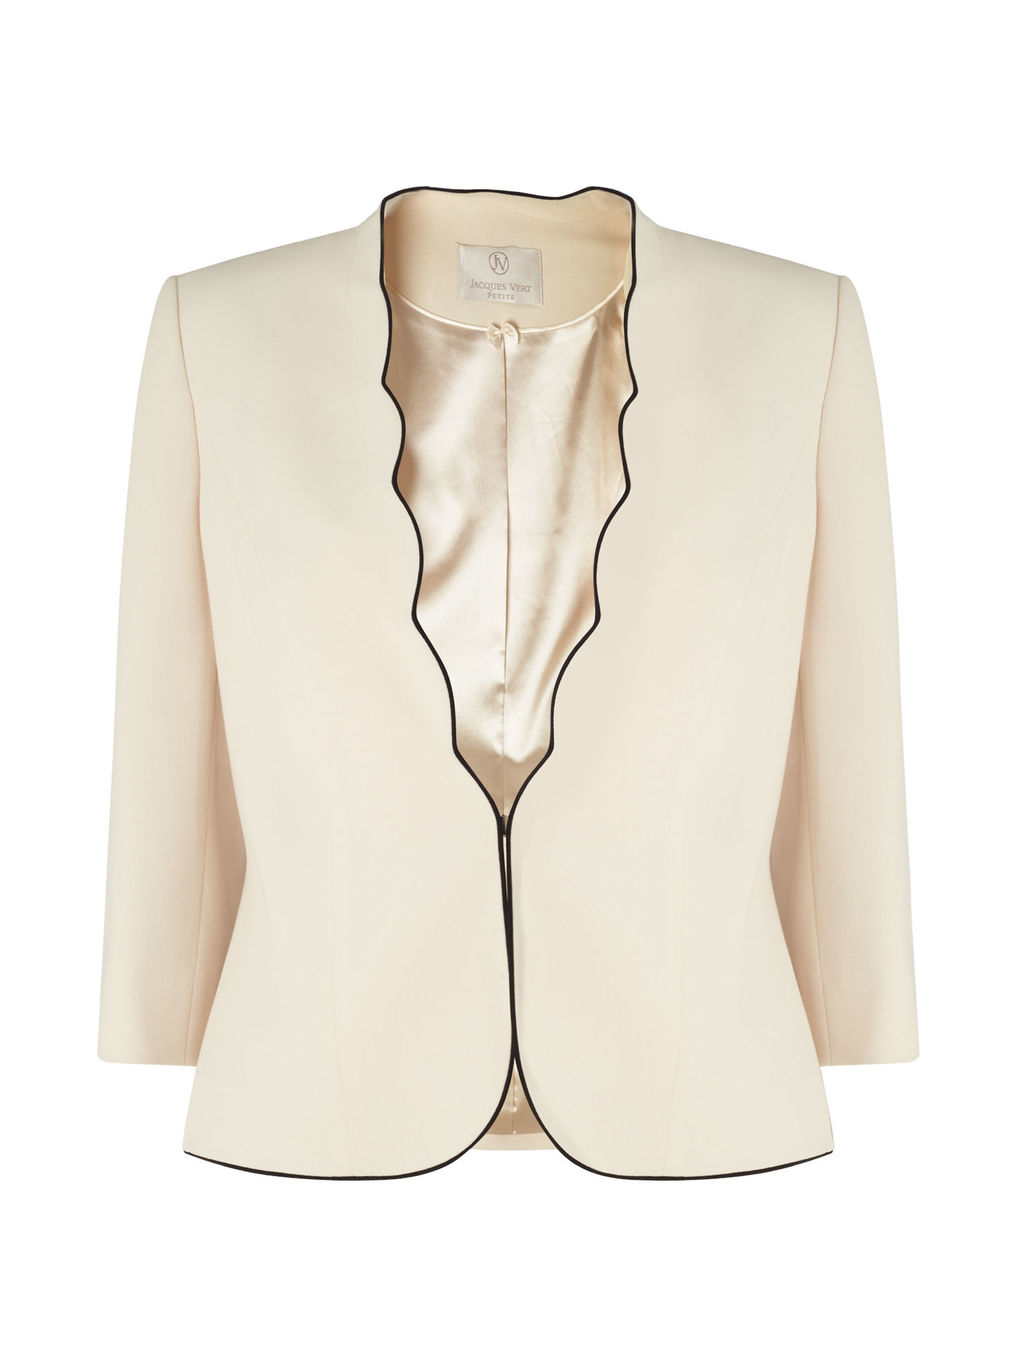 Petite Scallop Edge Jacket, Ivory - pattern: plain; style: single breasted blazer; collar: round collar/collarless; predominant colour: ivory/cream; length: standard; fit: tailored/fitted; fibres: polyester/polyamide - 100%; occasions: occasion; sleeve length: 3/4 length; sleeve style: standard; collar break: medium; pattern type: fabric; texture group: woven light midweight; season: s/s 2016; wardrobe: event